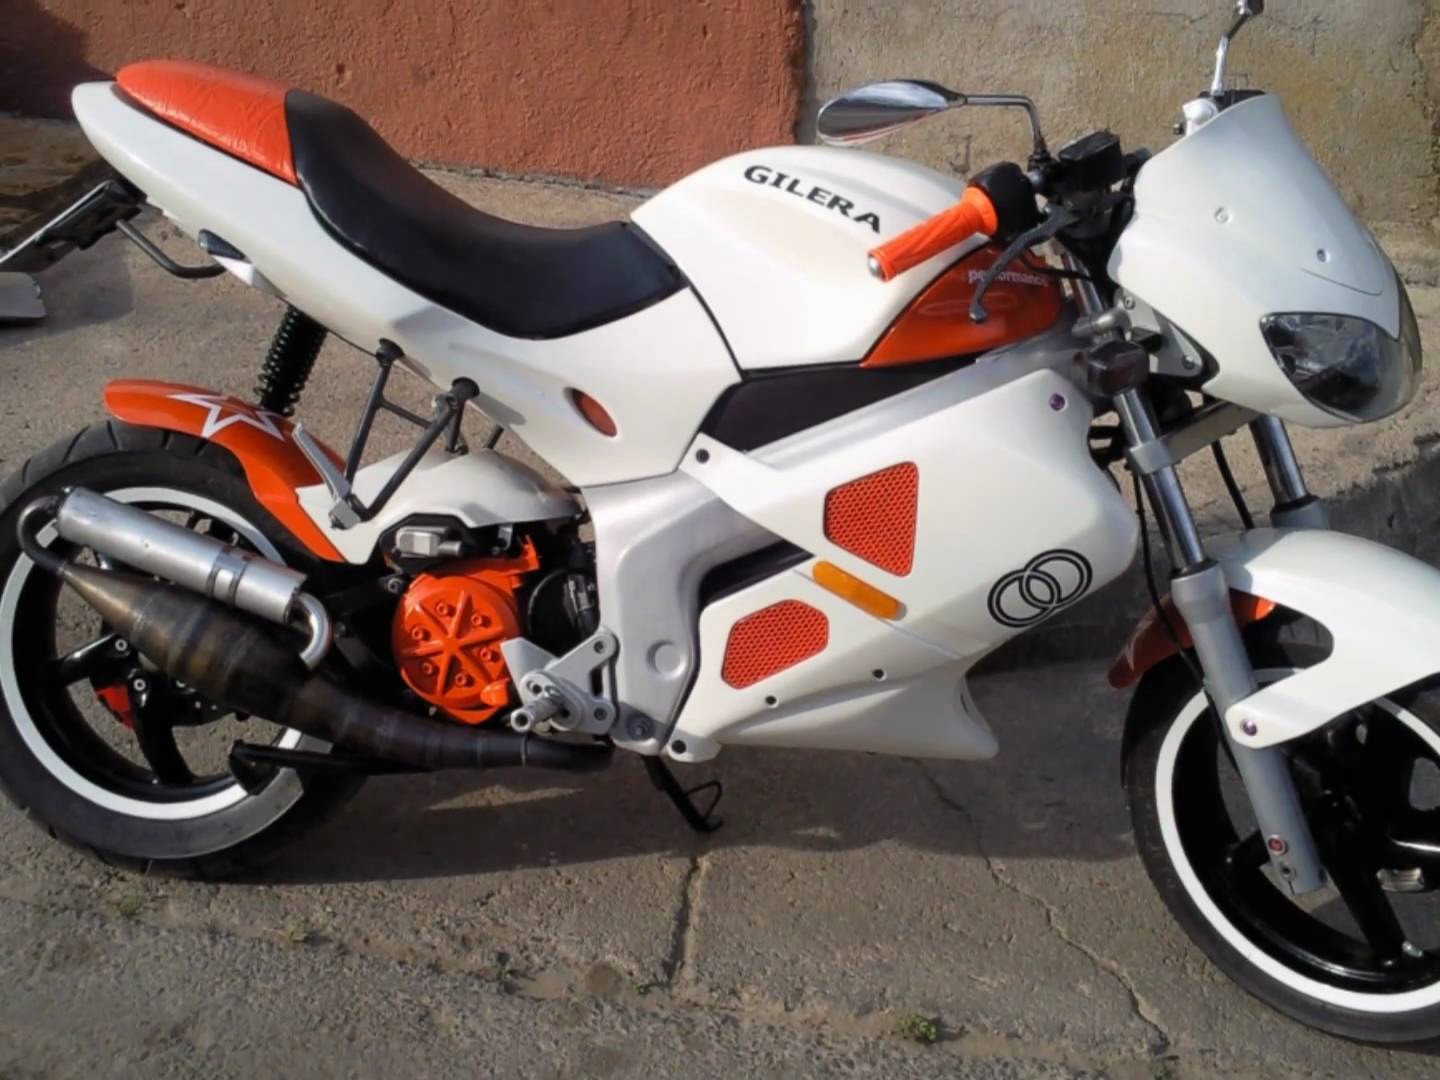 Gilera DNA 125 2004 images #73646